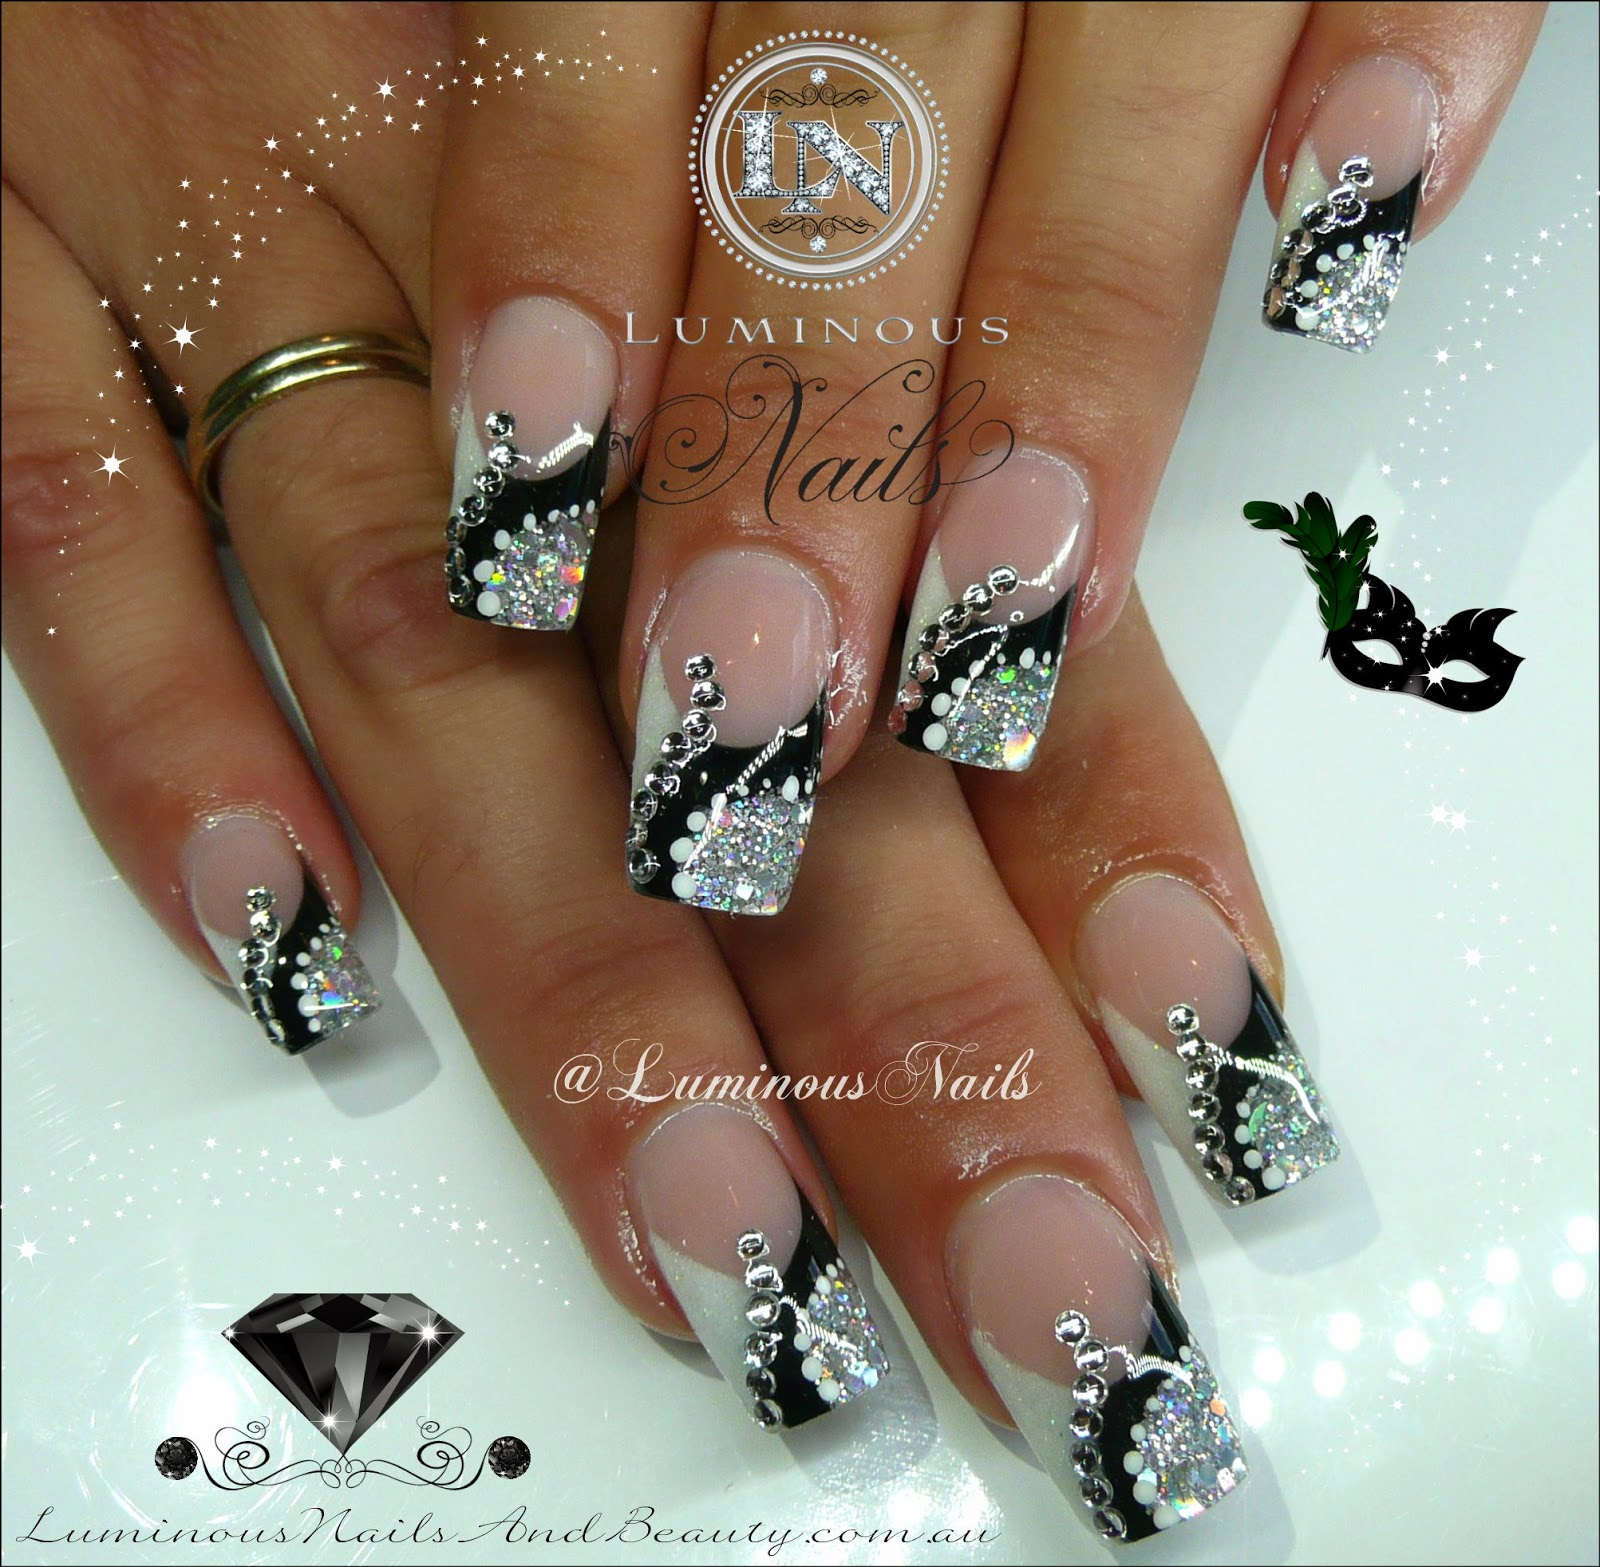 Black white silver nail designs choice image nail art and nail black n silver nail designs images nail art and nail design ideas black white and silver prinsesfo Choice Image